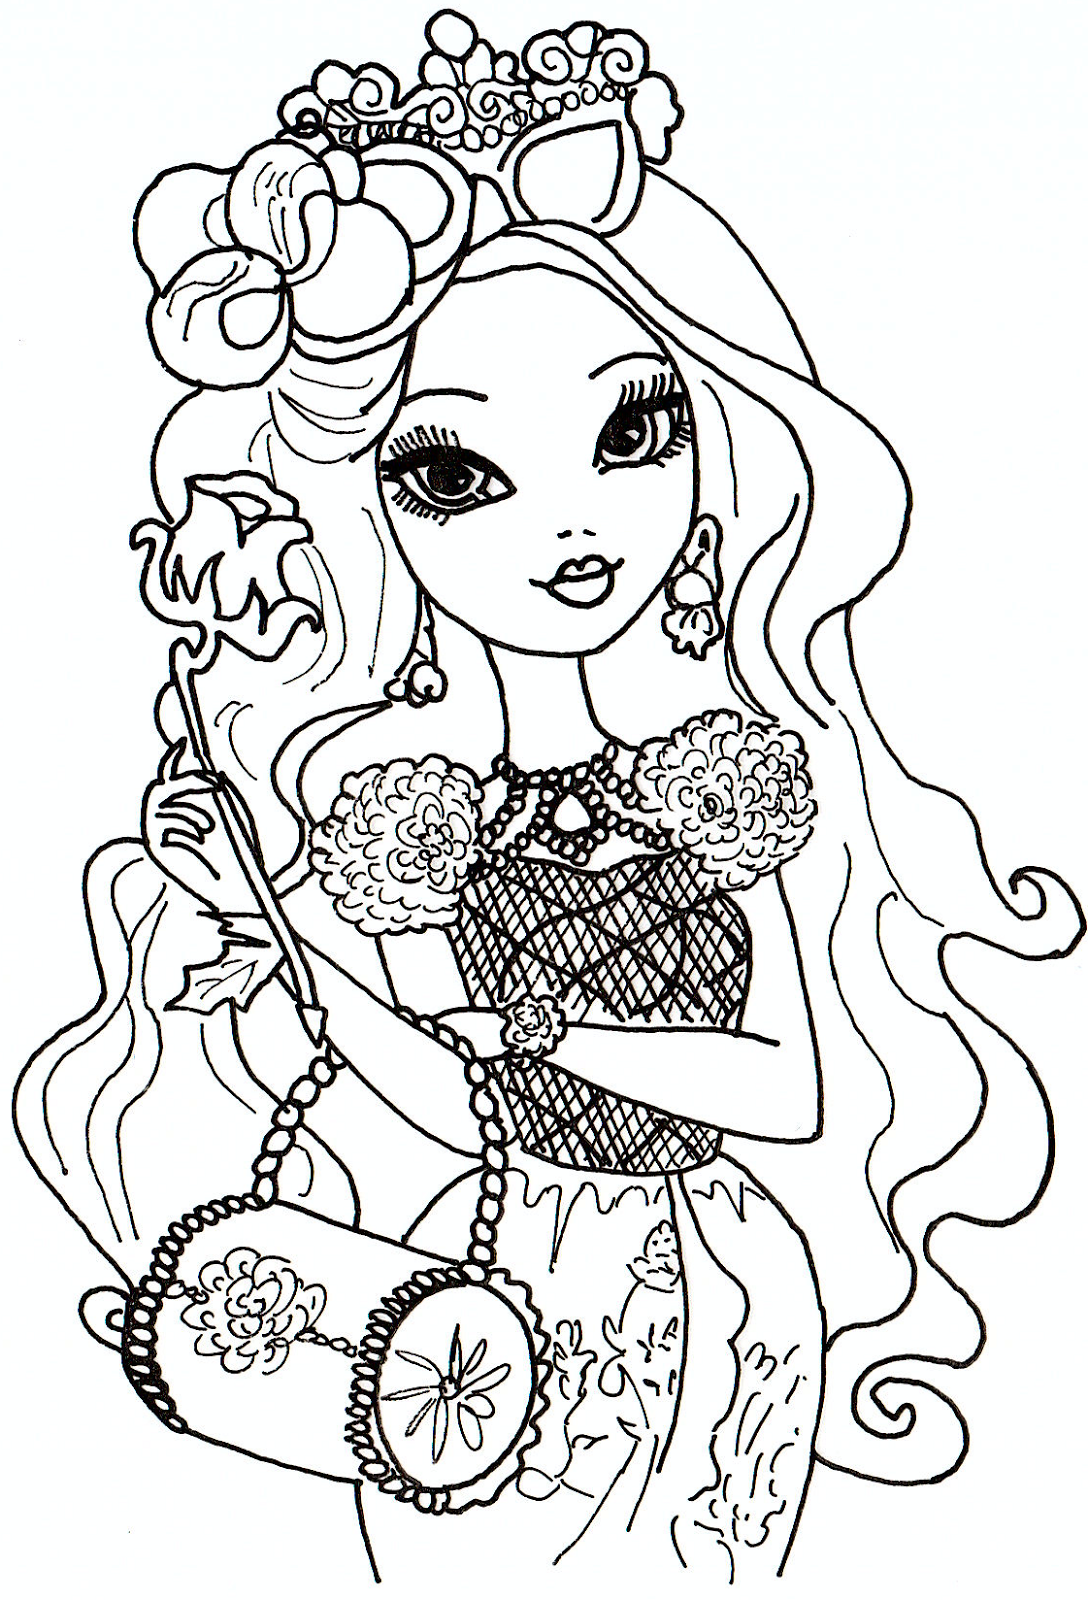 Free Printable Ever After High Coloring Pages June 2013